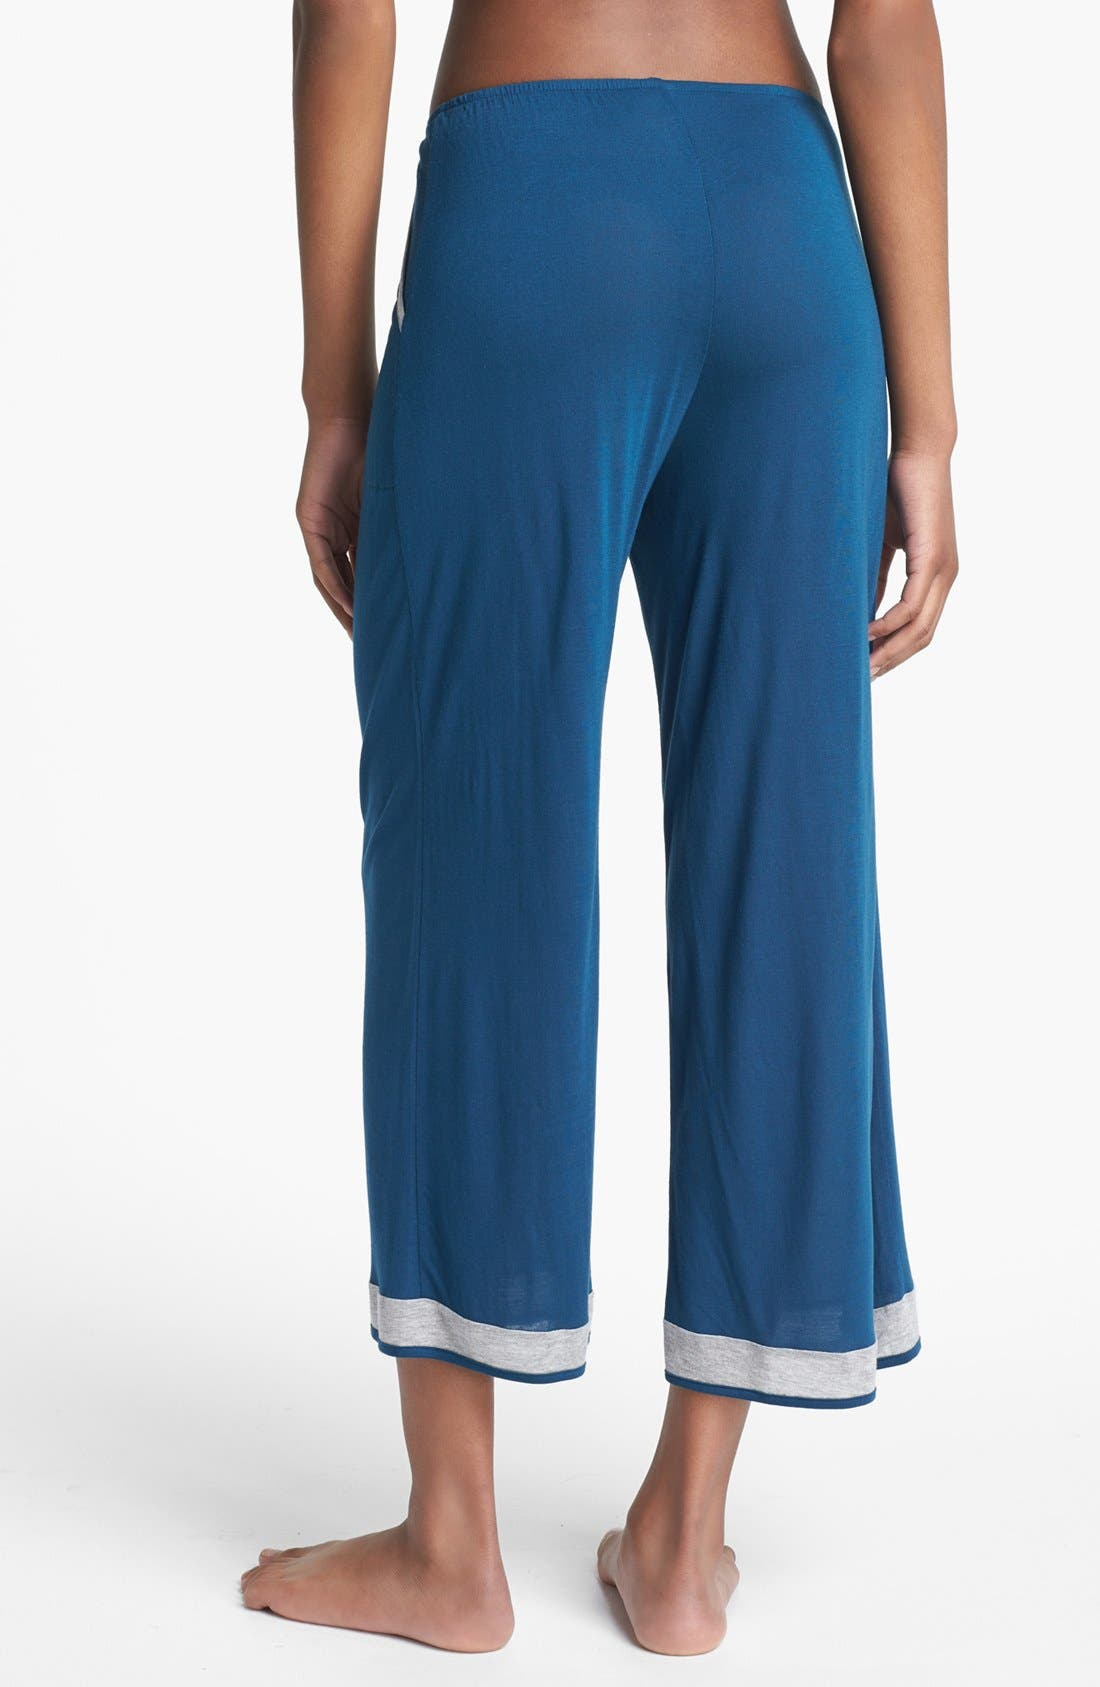 Alternate Image 2  - Only Hearts 'Venice Beach' Crop Lounge Pants